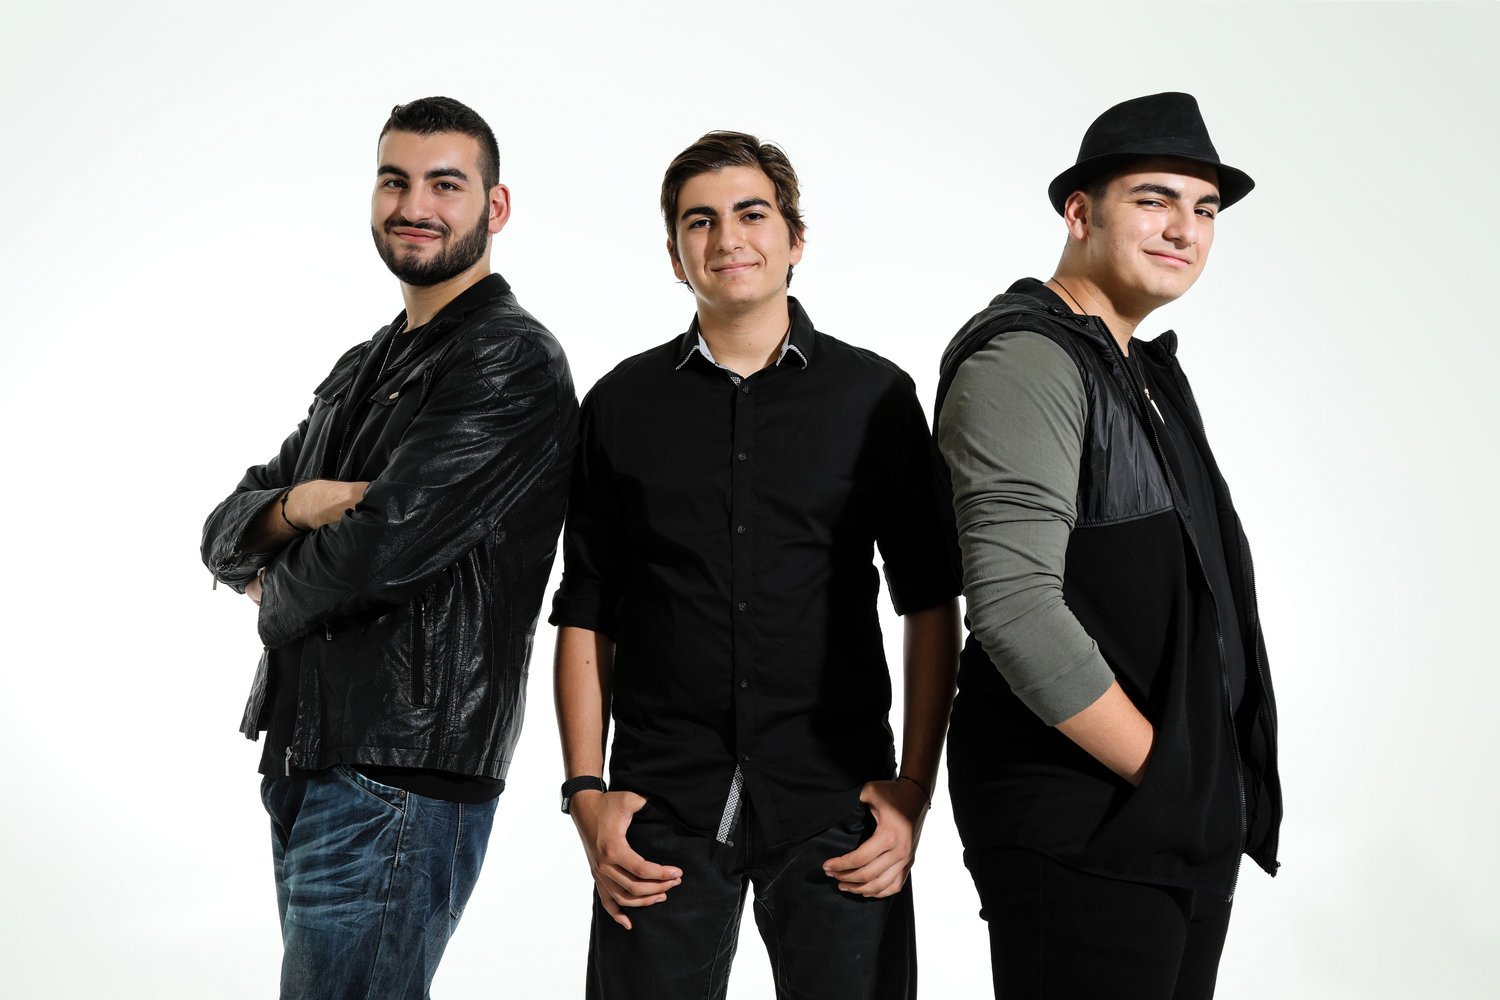 Smile 's for S3 Saba Brothers